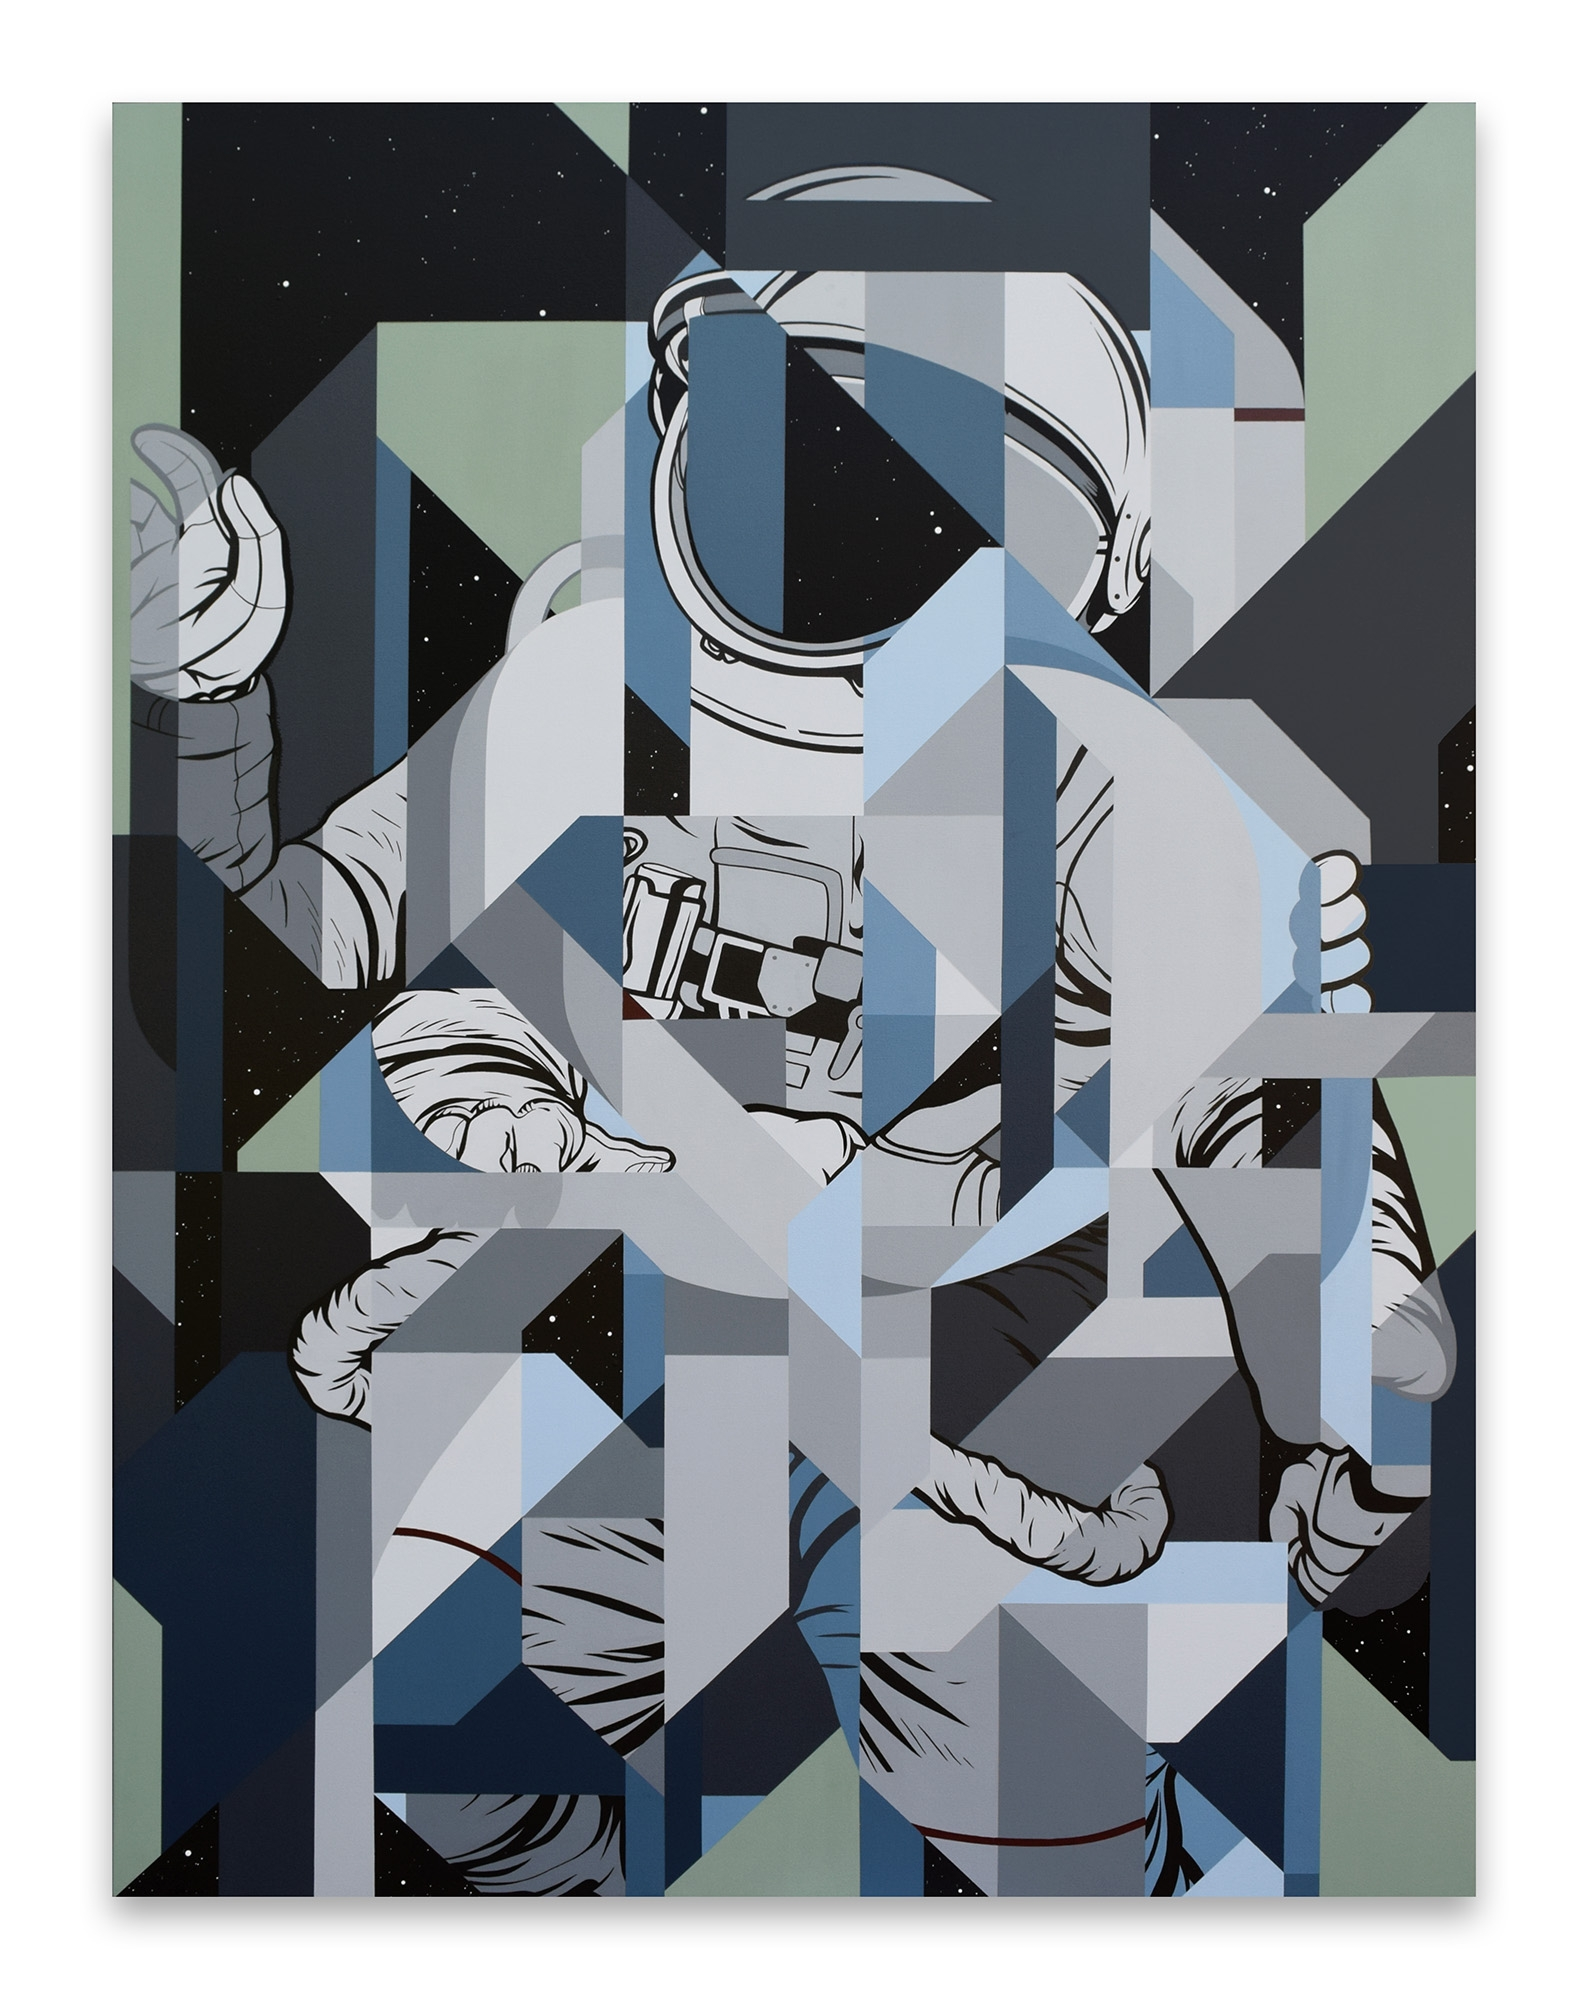 Shoulder Orion Acrylic painting - ericpause | ello